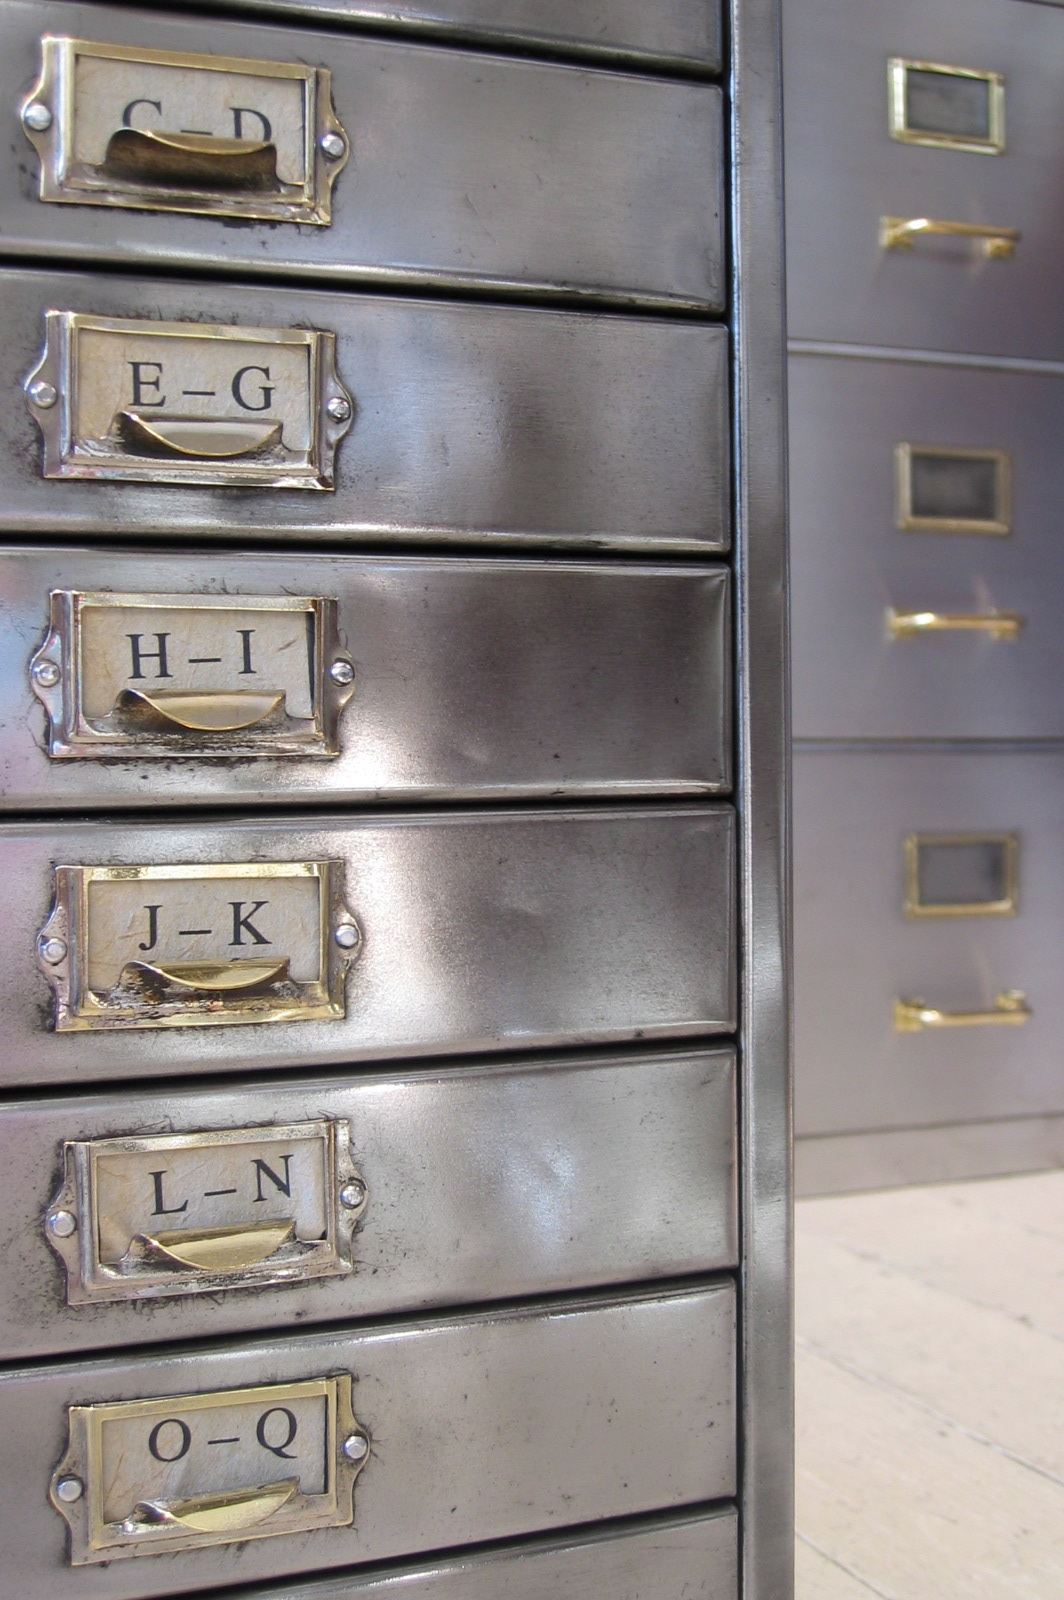 Charmant Advertisements. Posted In Vintage Steel | Tagged Filing Cabinets ...